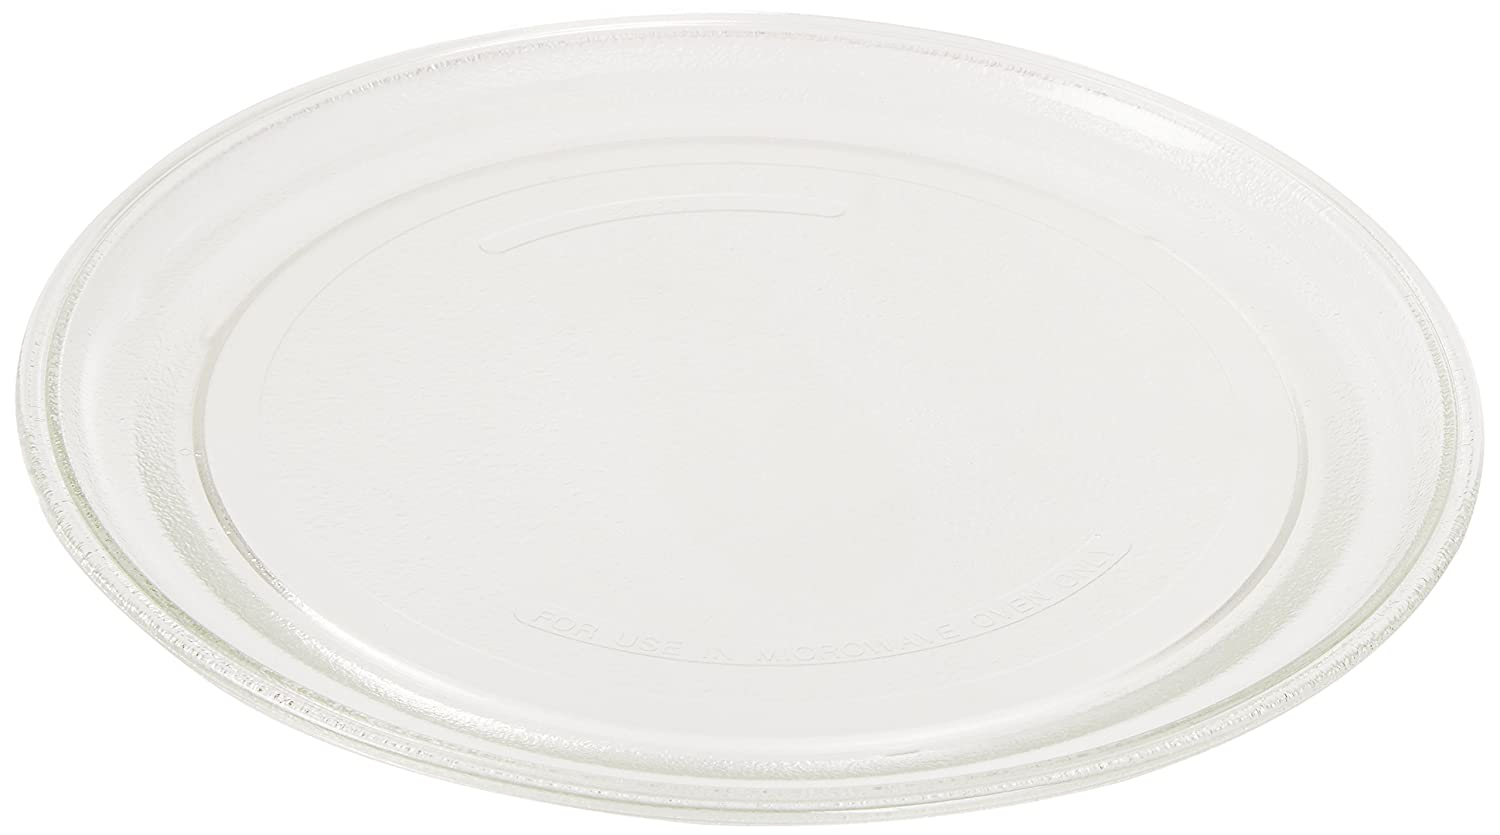 Frigidaire 5304440285 Glass Tray Microwave